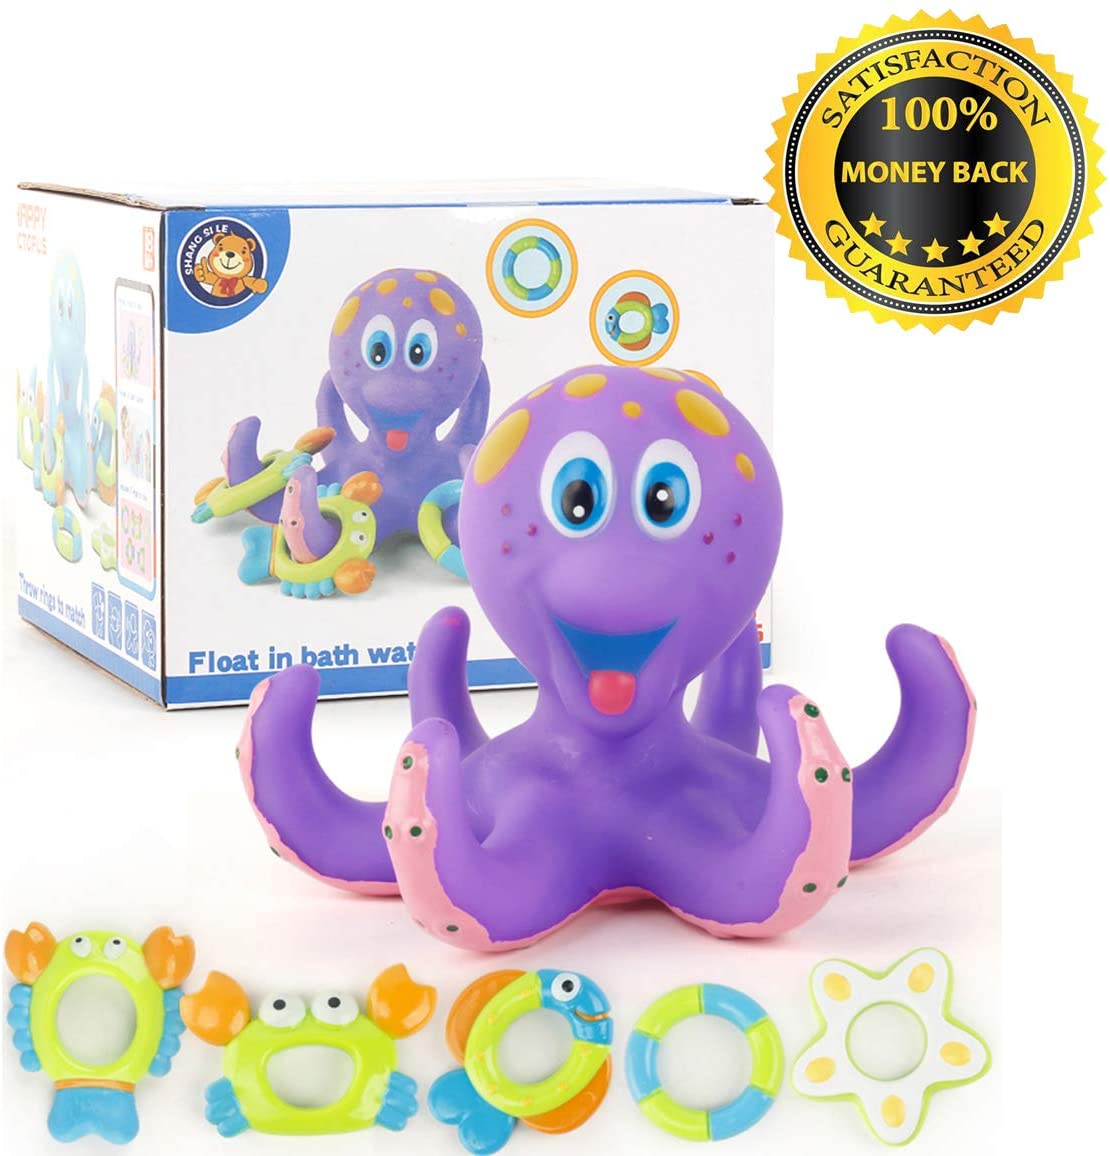 Glory Floating Purple Soft Rubber Octopus with 5pcs Marine Biosphere Hoopla Rings Assorted Playing Bath Toys for Kids & Toddlers